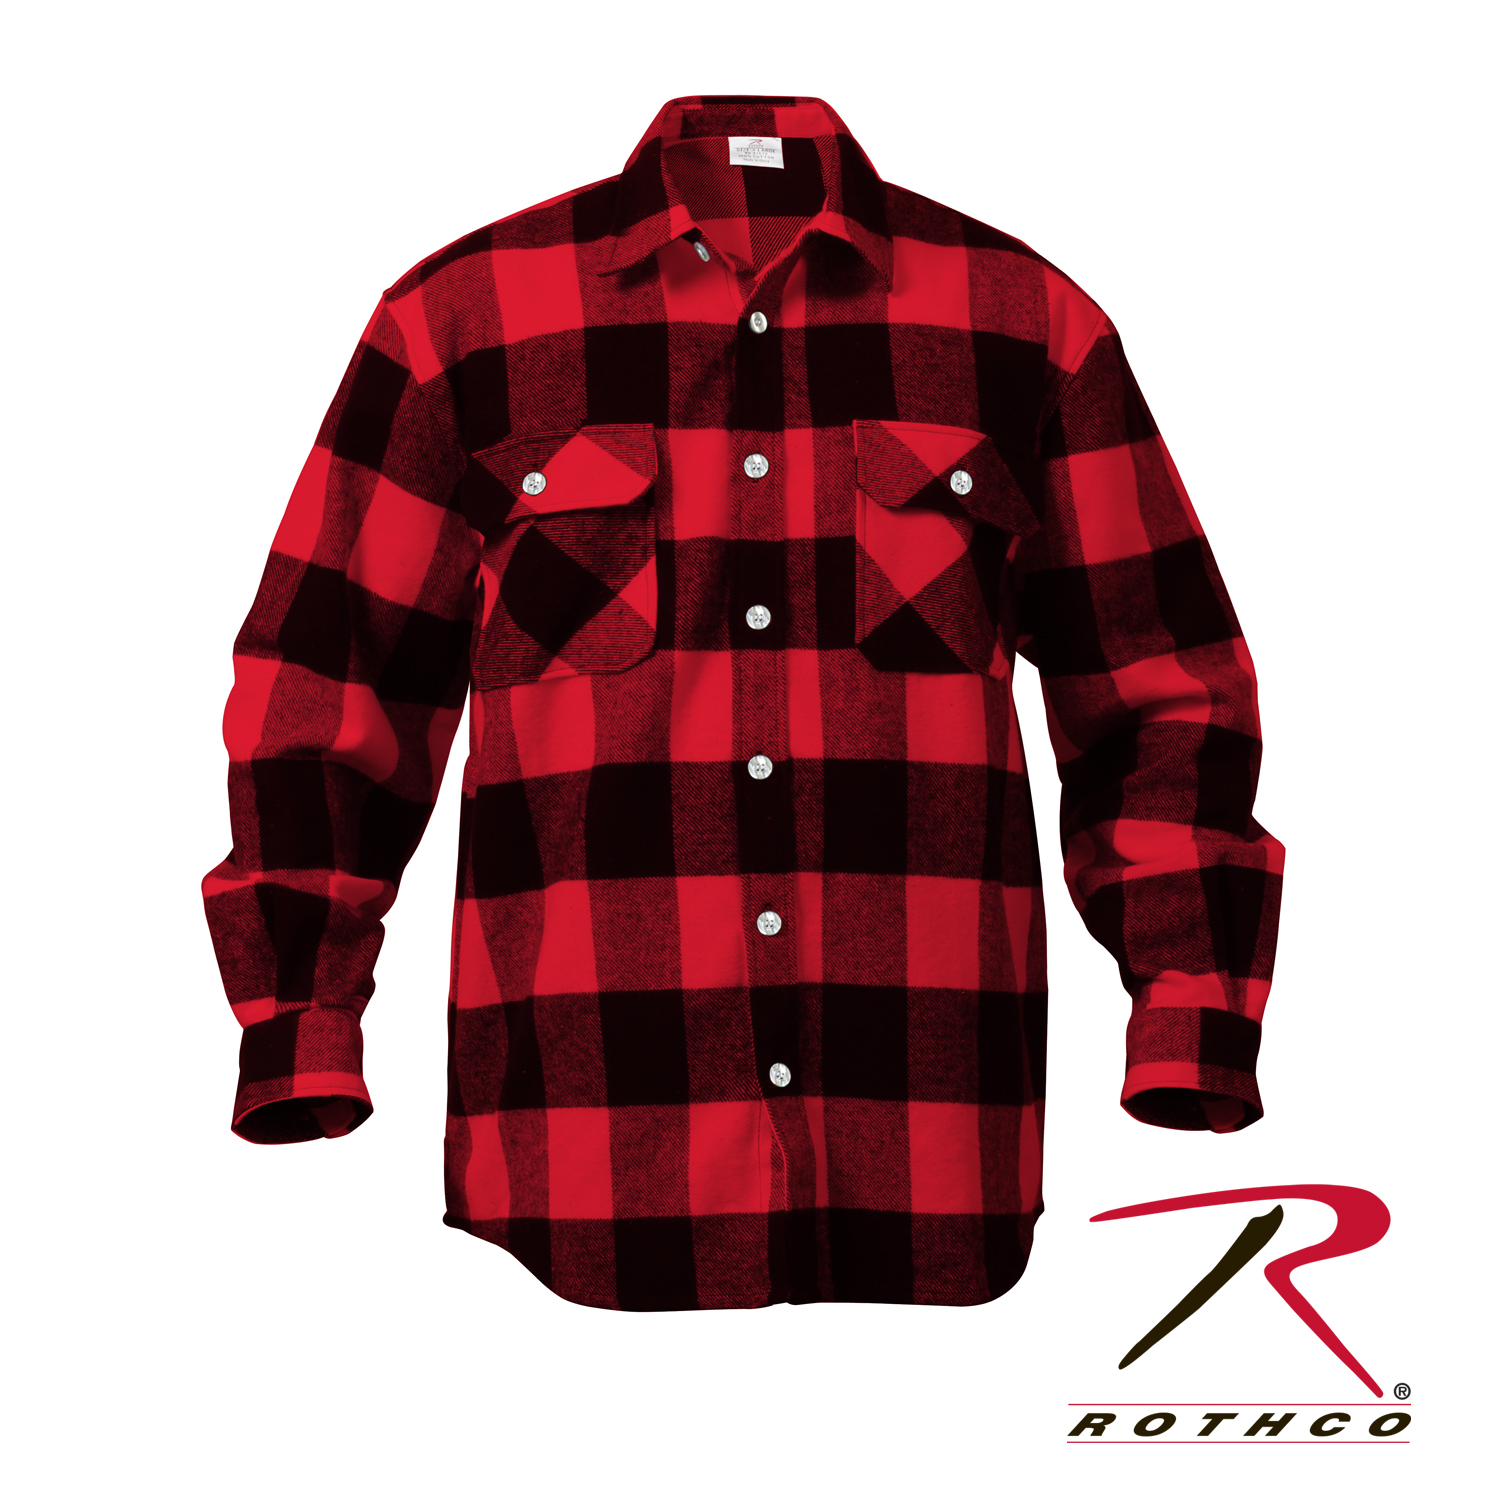 a6ffd341 Rothco Extra Heavyweight Buffalo Plaid Flannel Shirts